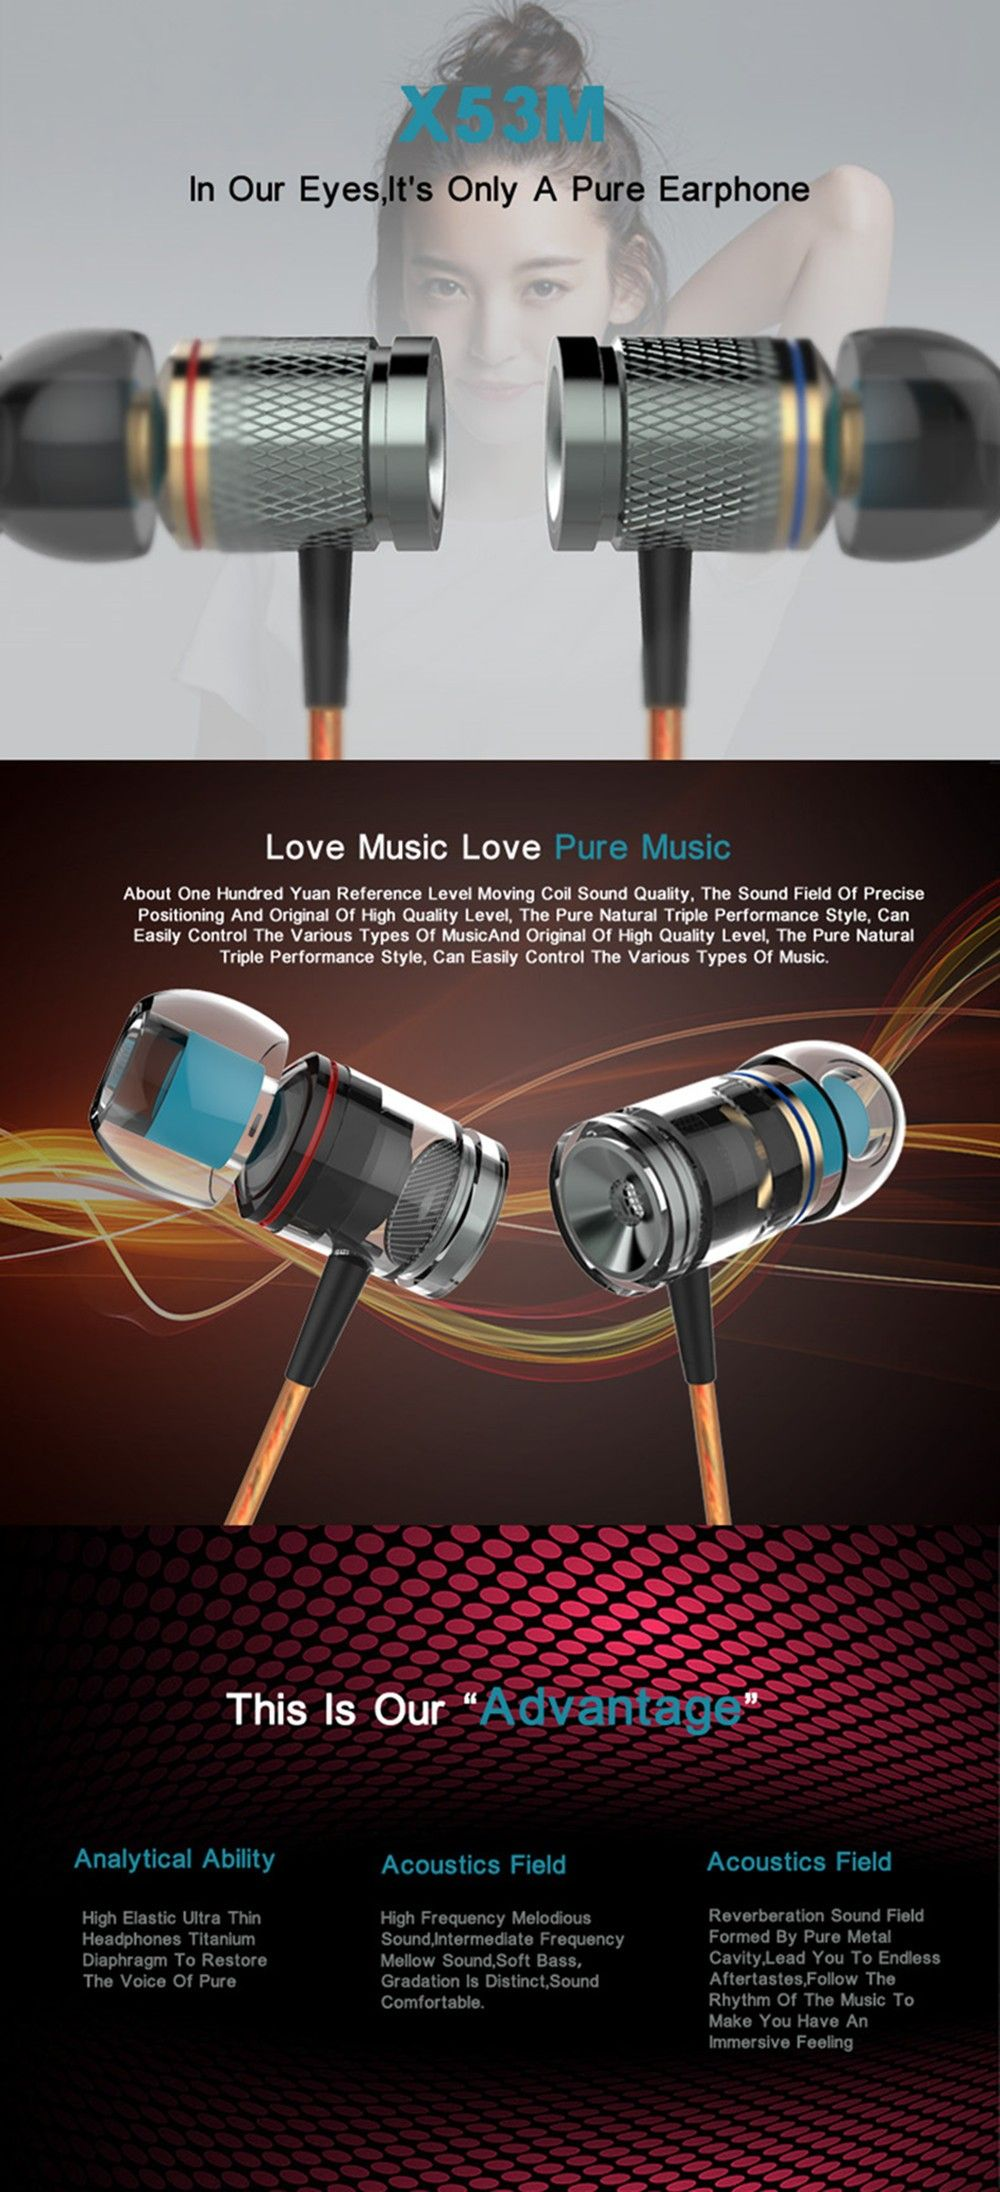 Pin by Bargain Paradise on Electronic Pro | Headphones ... Voice Controlled Headphones Wiring Diagram on